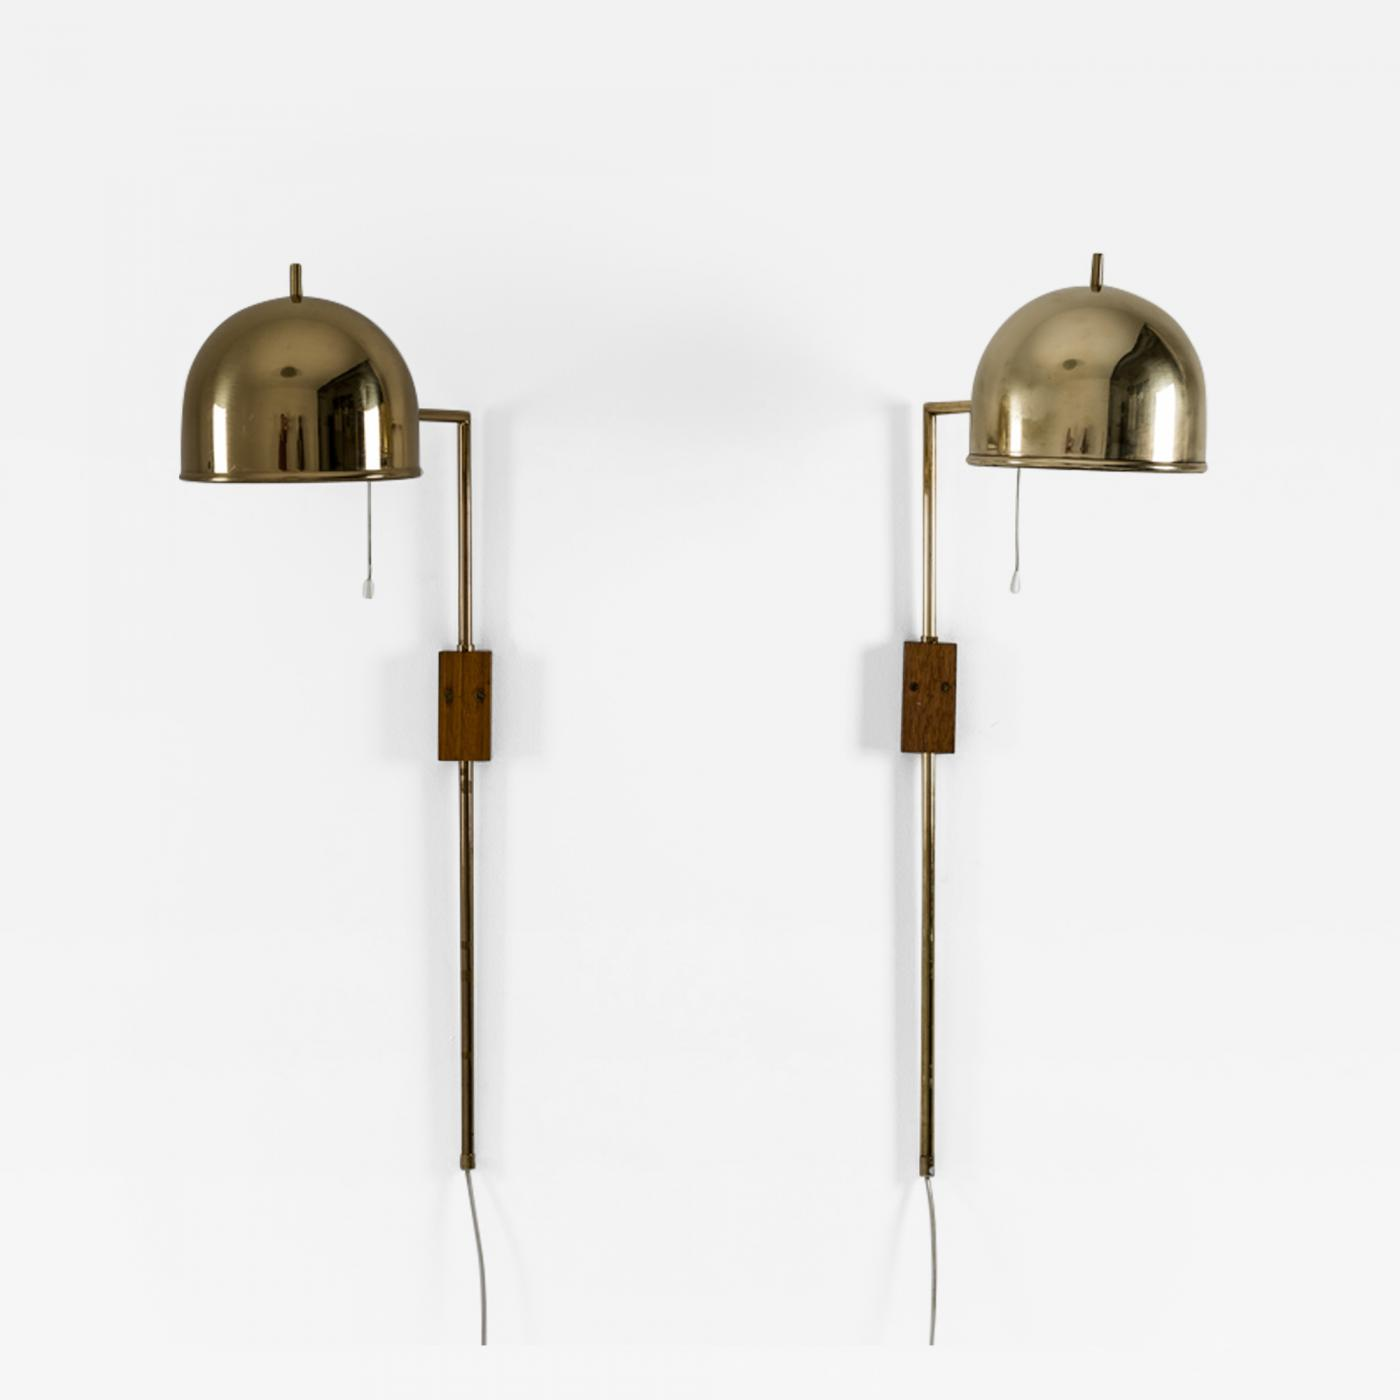 Bergboms Scandinavian Midcentury Wall Lamps In Brass By Bergboms Sweden